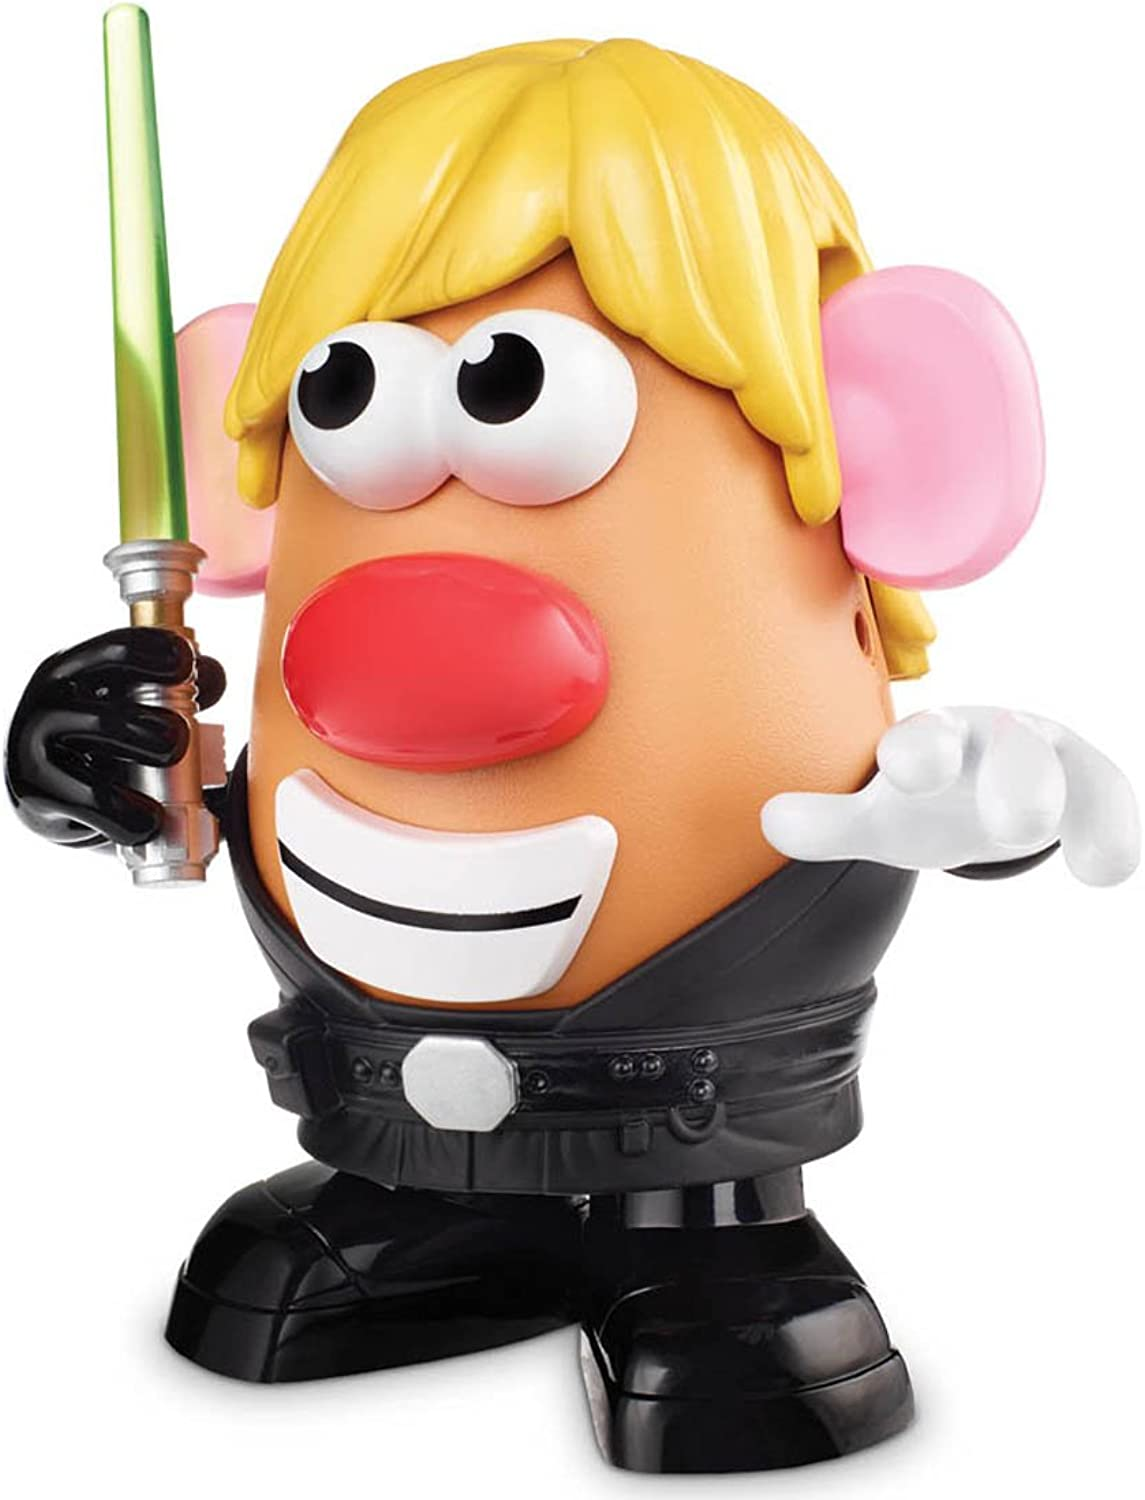 Mr. Potato Head Star Wars Luke fly Walker